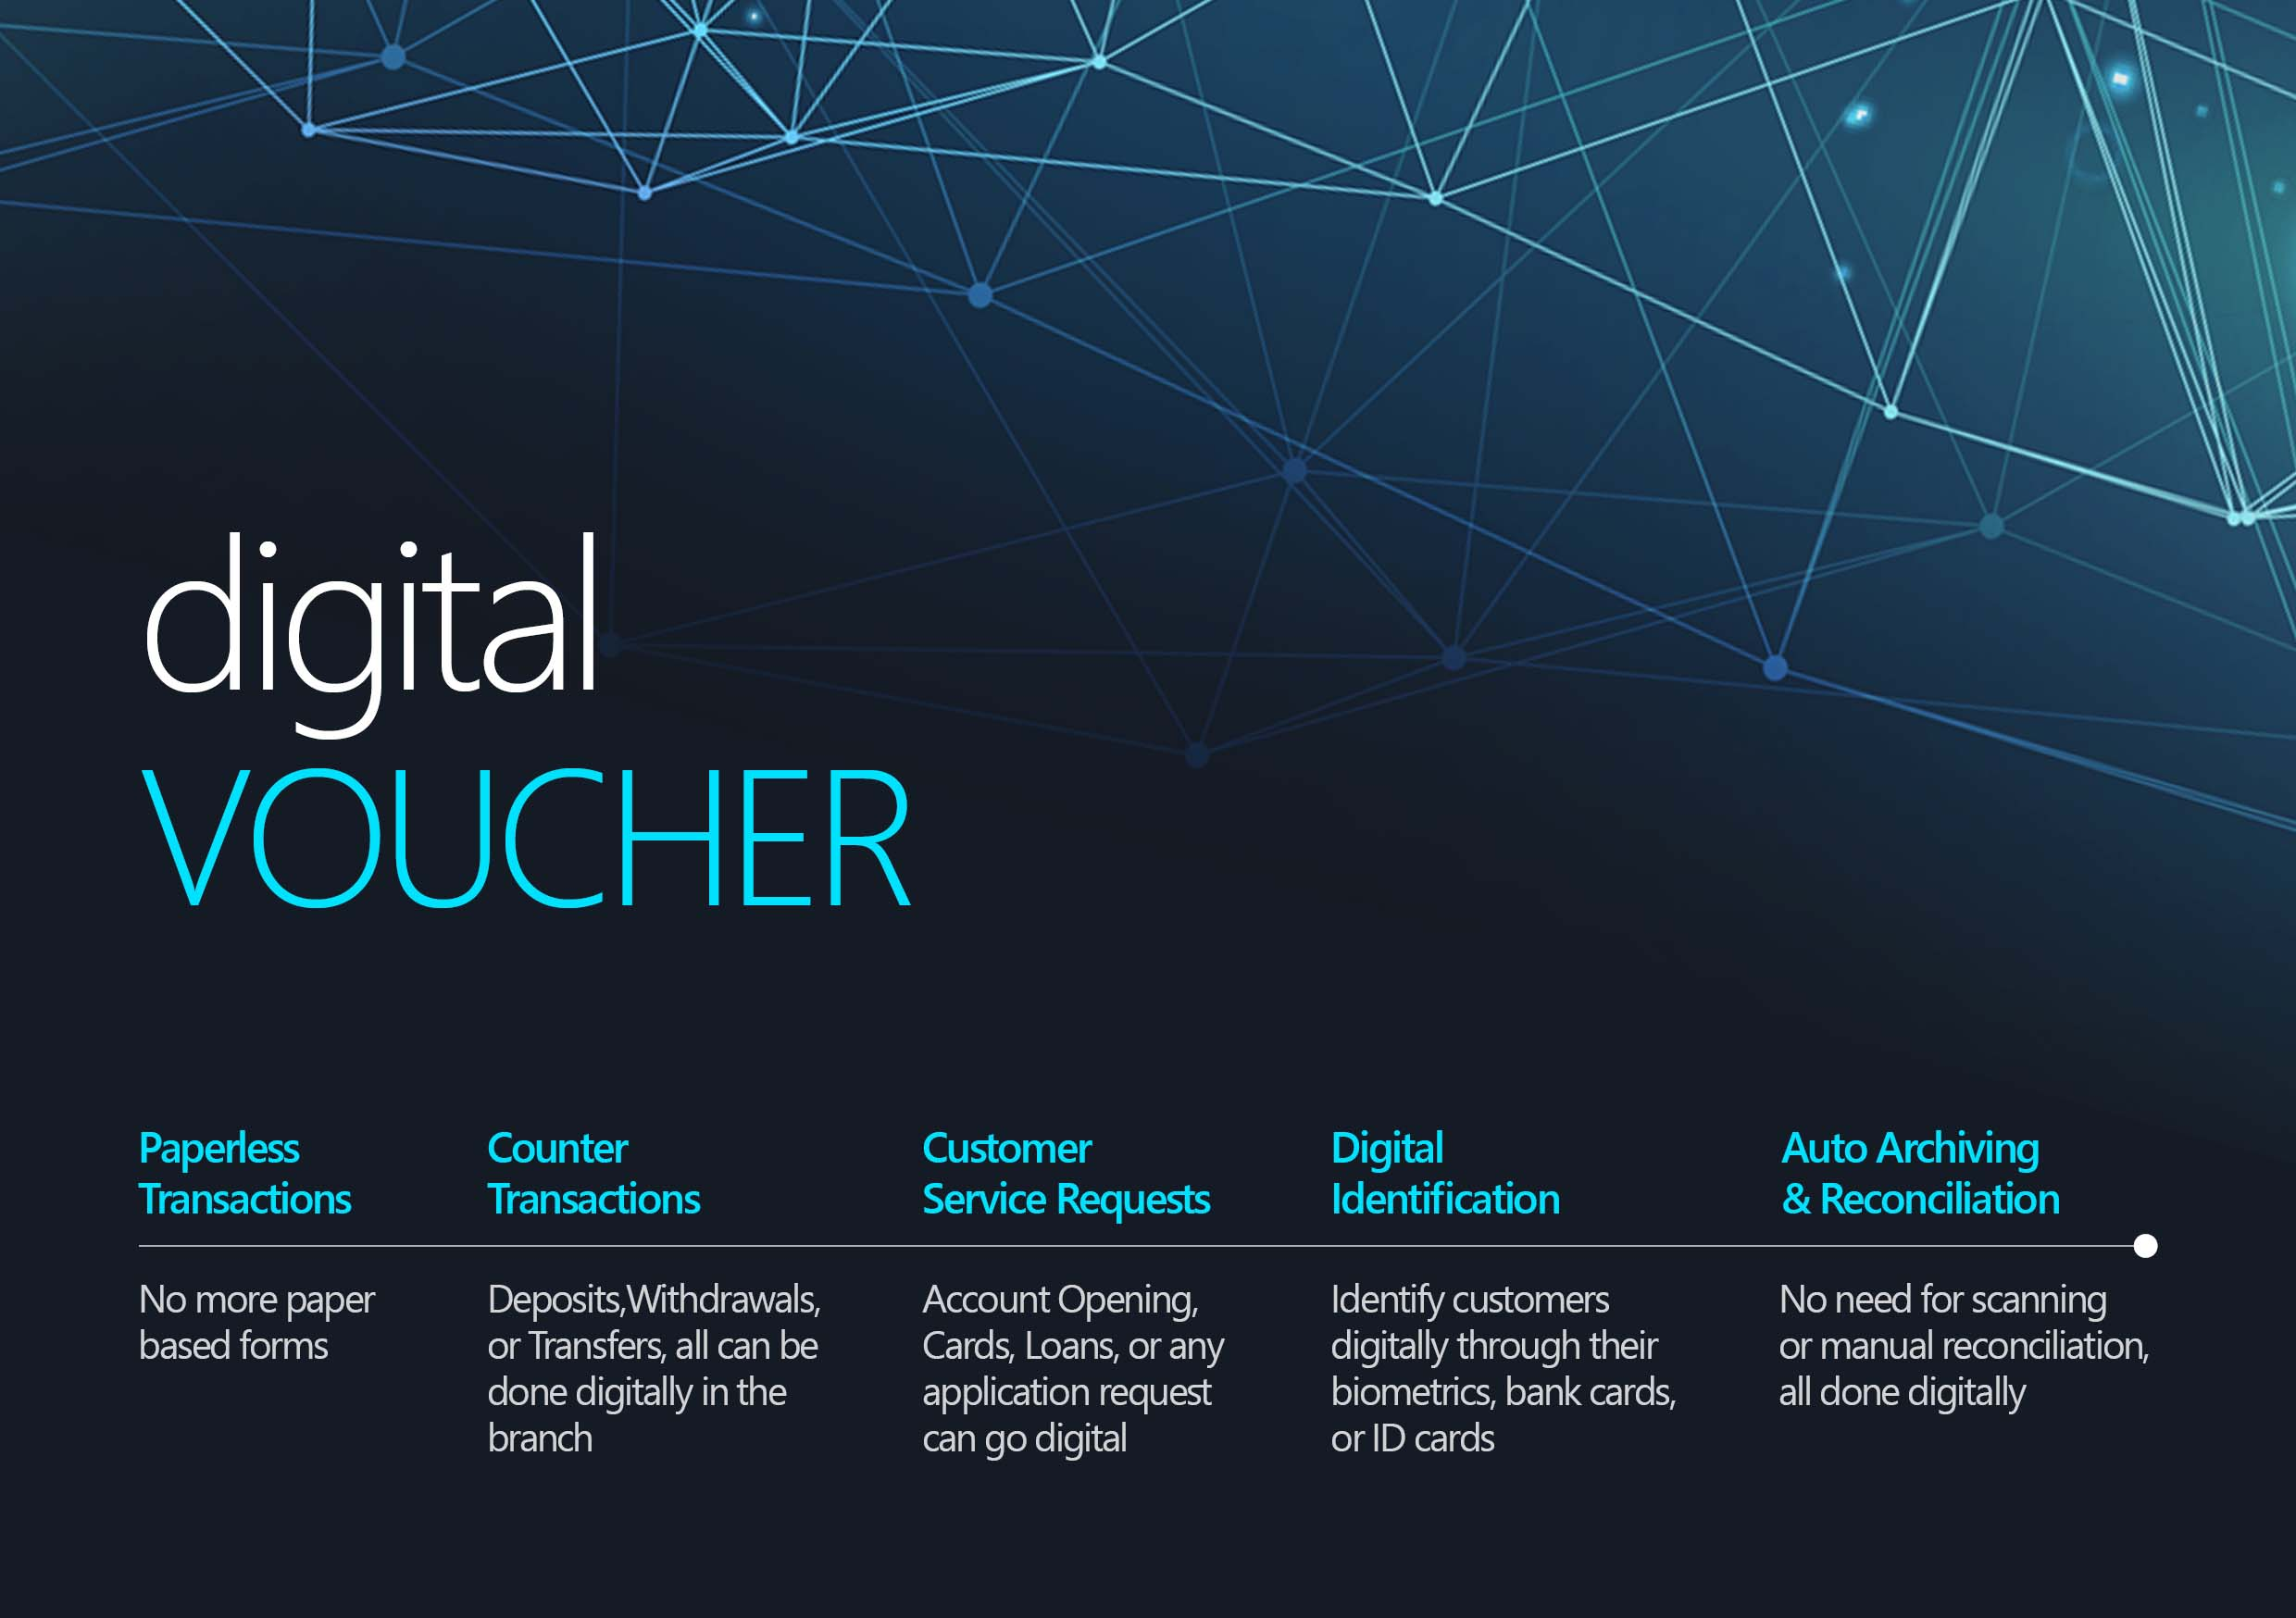 Digital Voucher